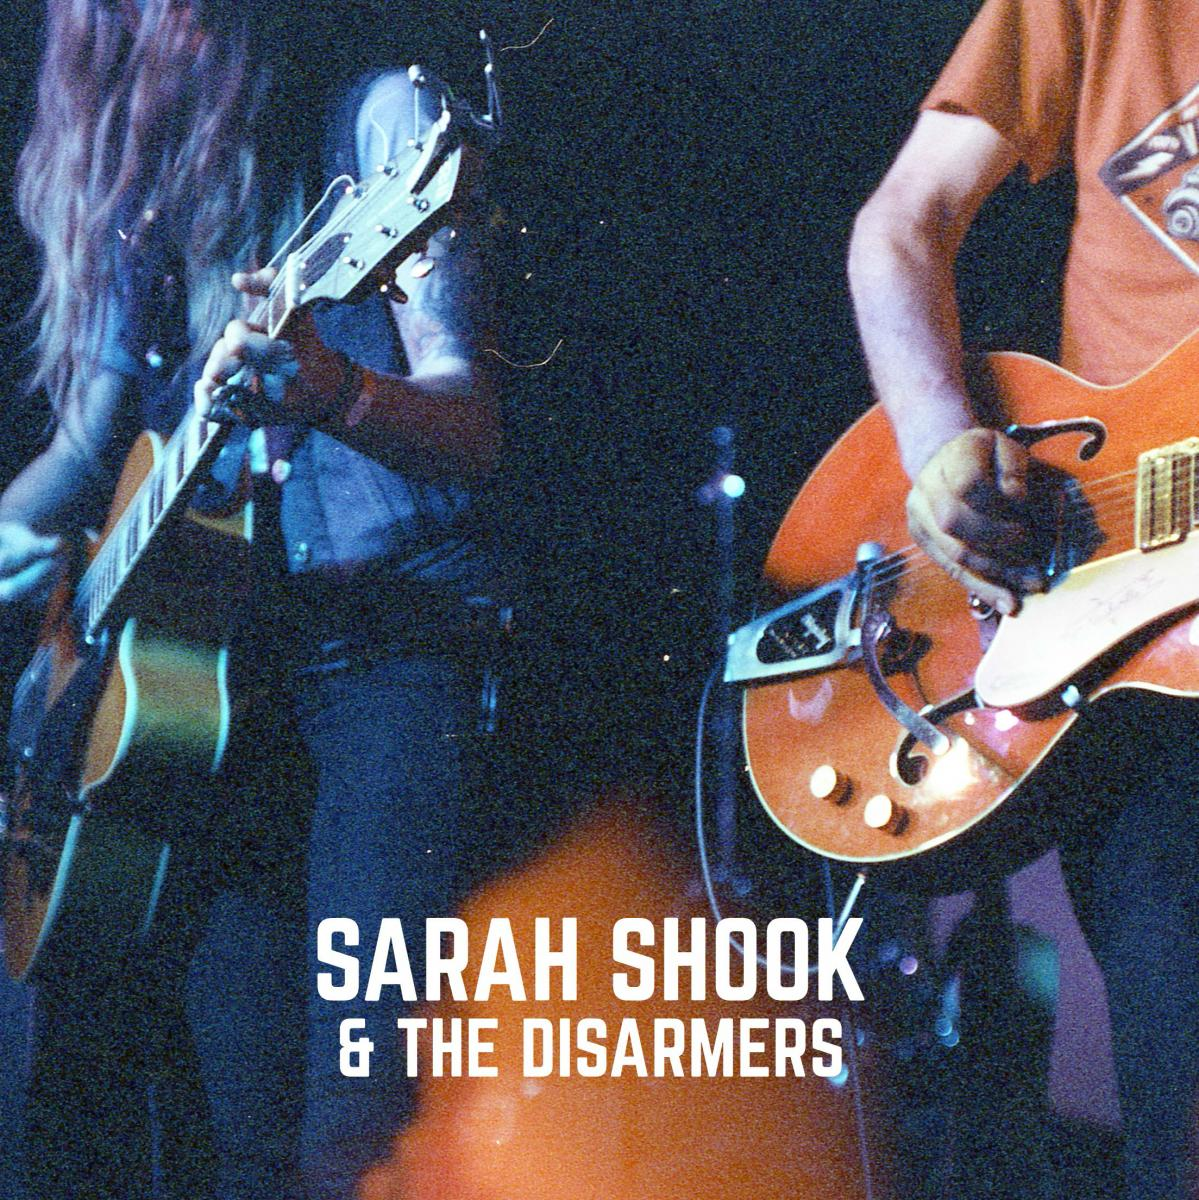 "Sarah Shook & the Disarmers The Way She Looked at You Devil May Care 7"" Single Art"